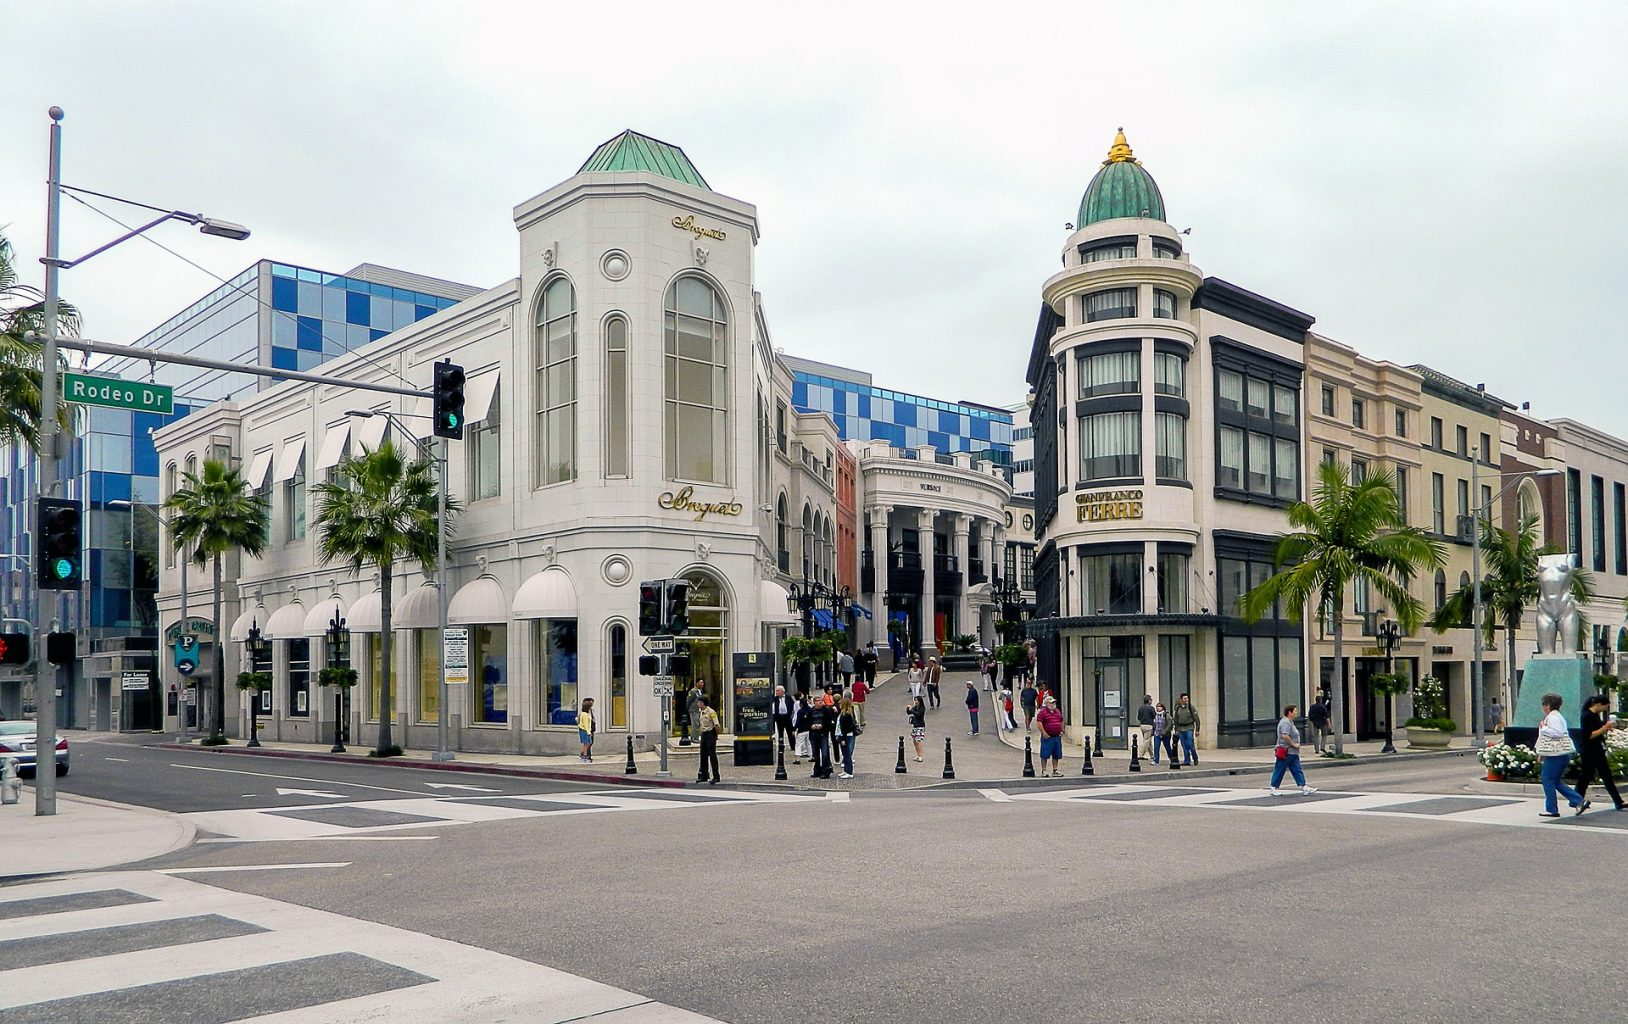 rodeo drive exterior